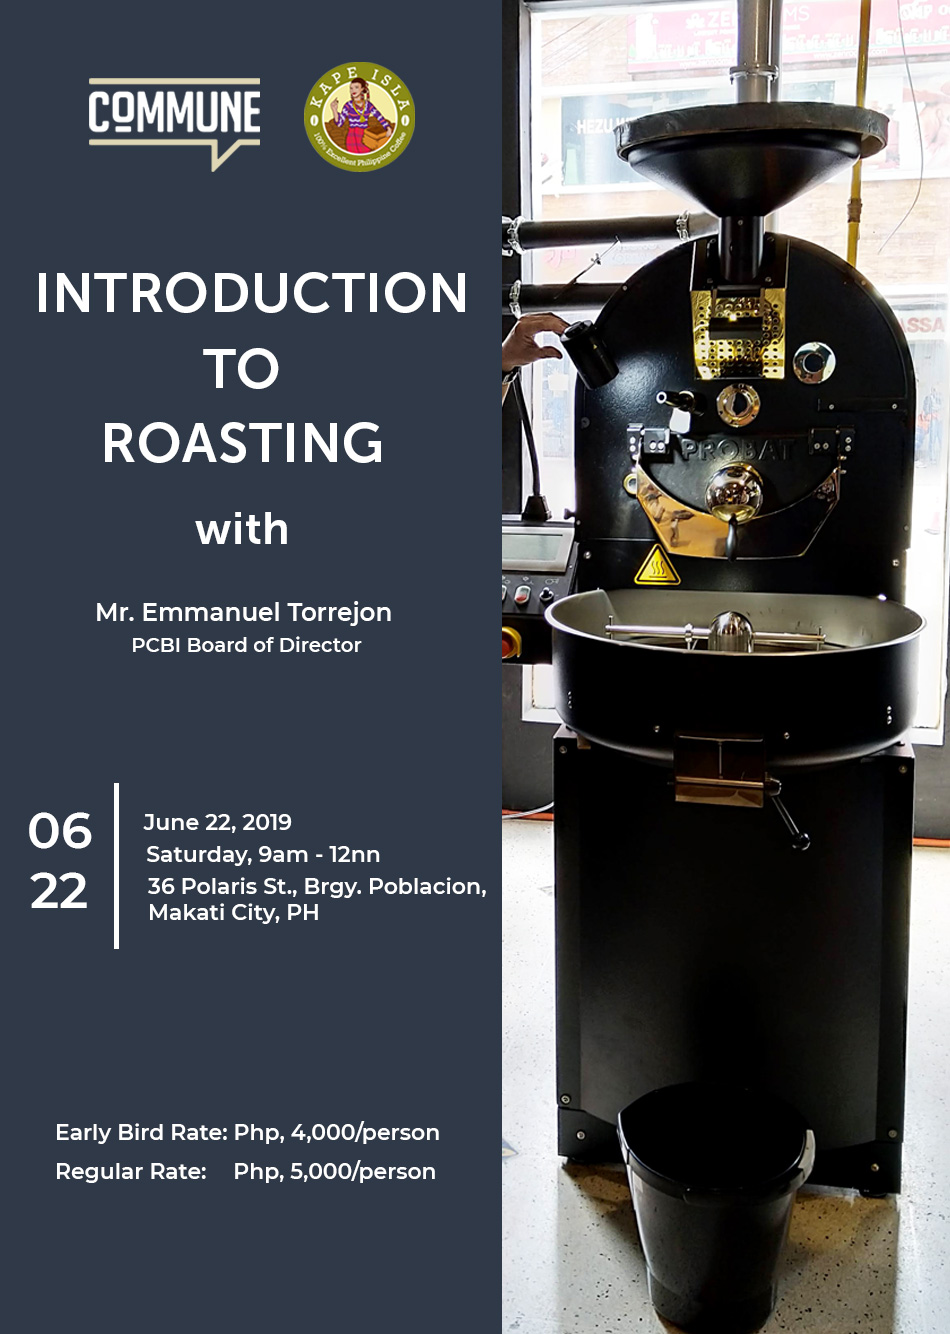 Introduction to Roasting